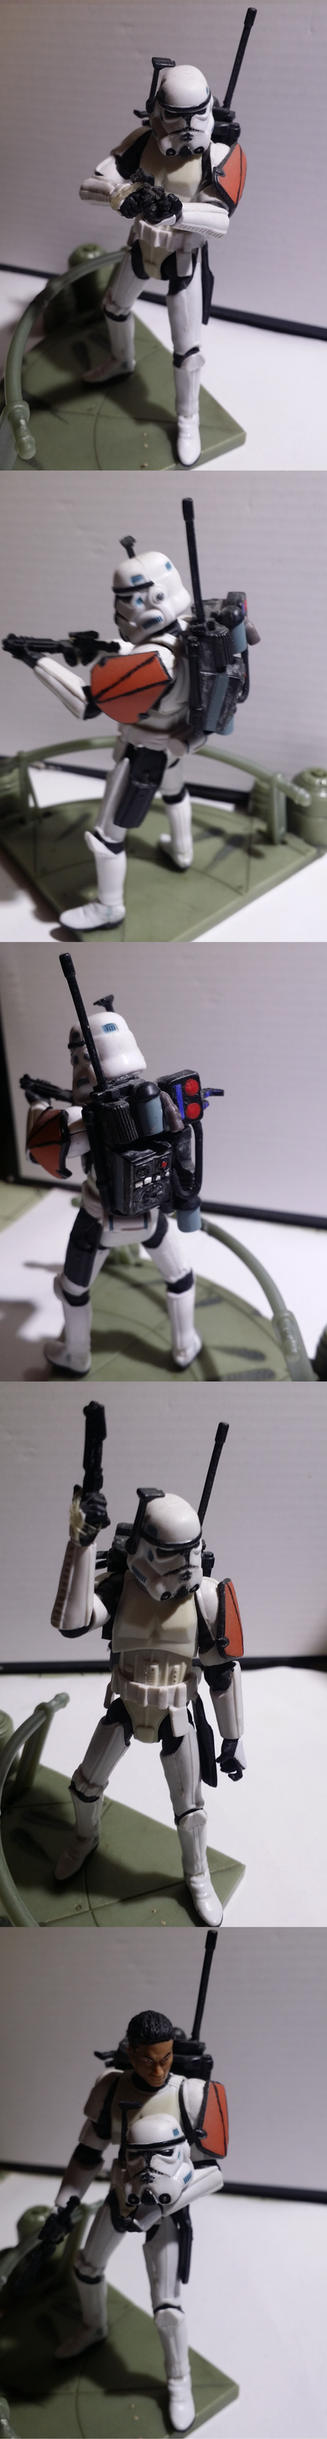 Clone Stormtrooper Commander Omega by EmporerXur